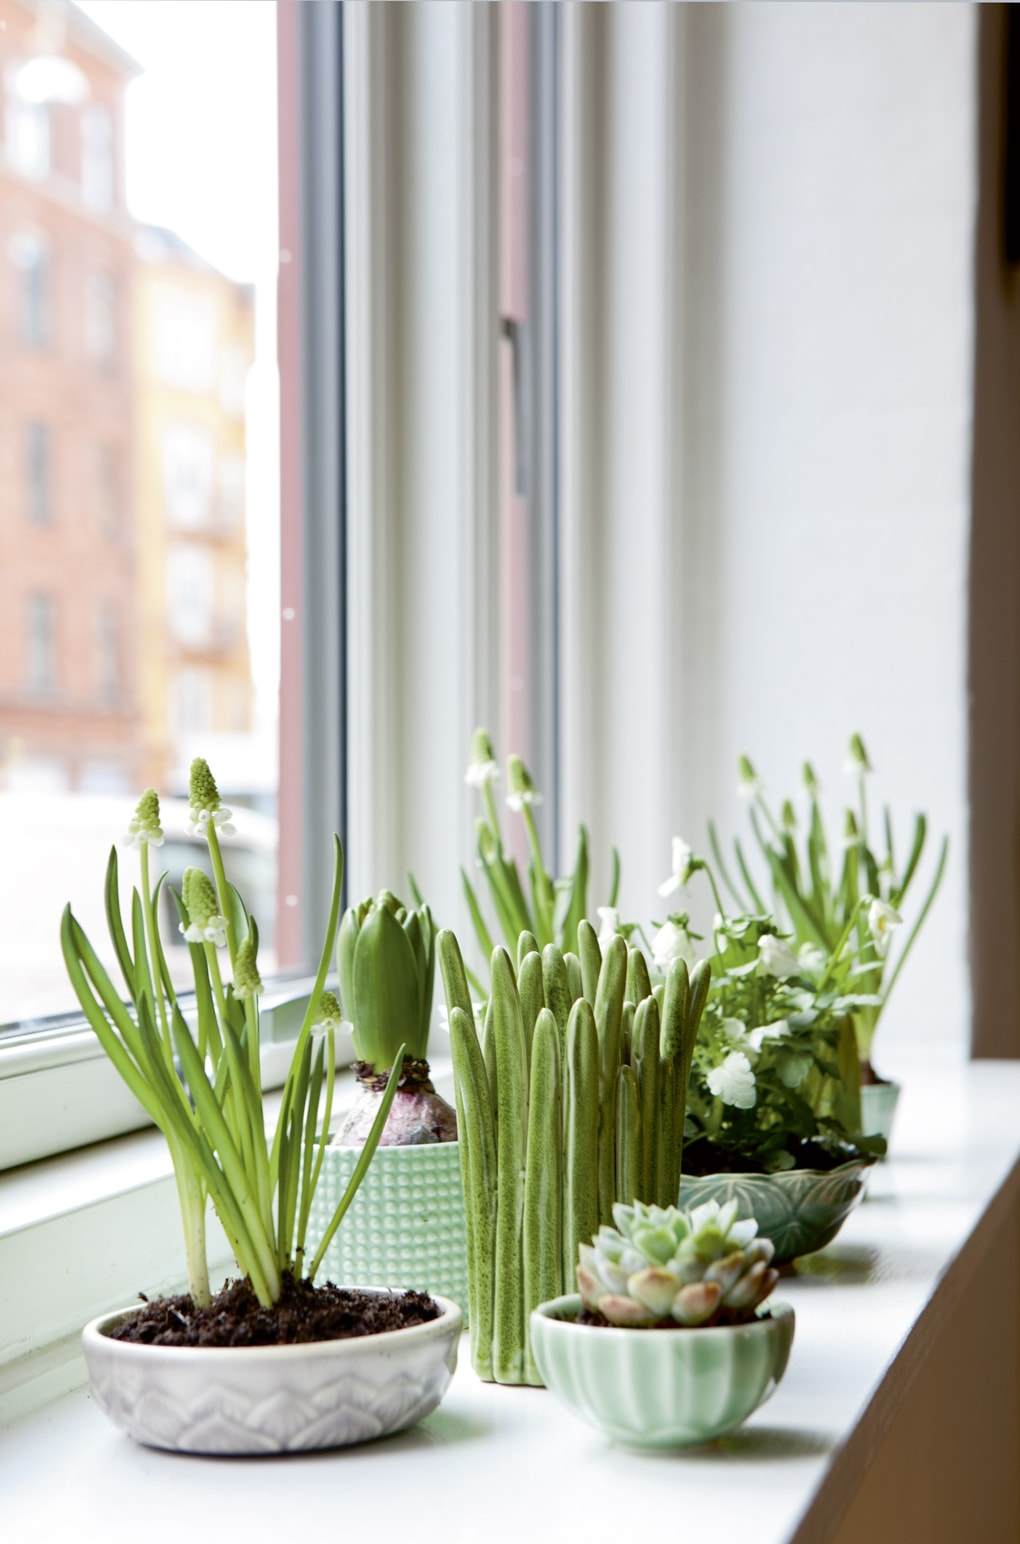 12 Creative Indoor Garden Ideas for your Home Decor